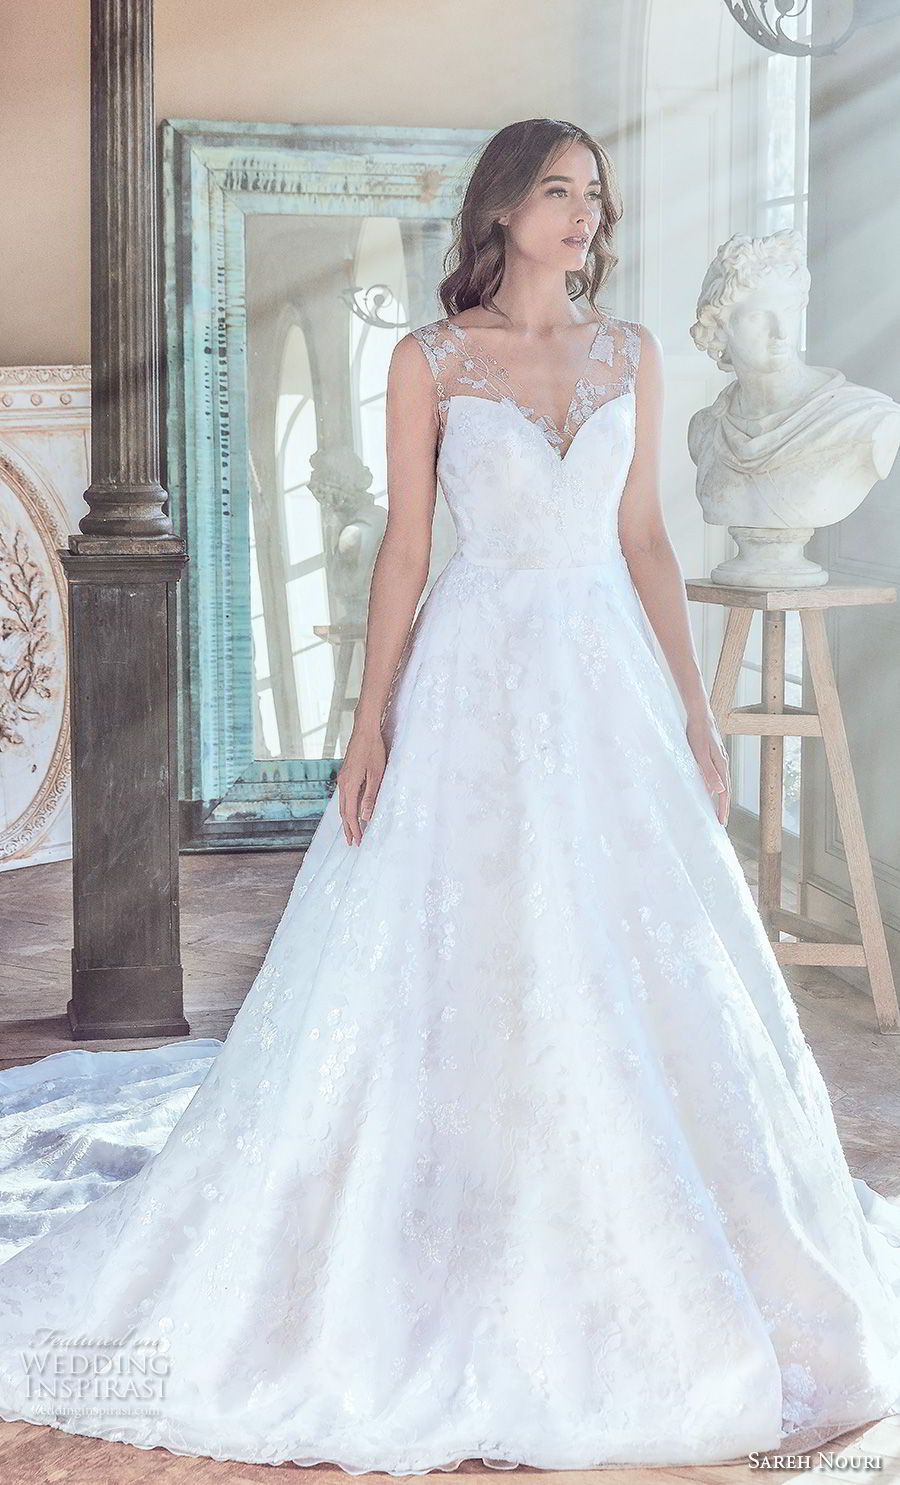 sareh nouri spring 2019 bridal sleeveless sheer lace thick strap sweetheart neckline full embellishment romantic a  line wedding dress v back long train (10) mv